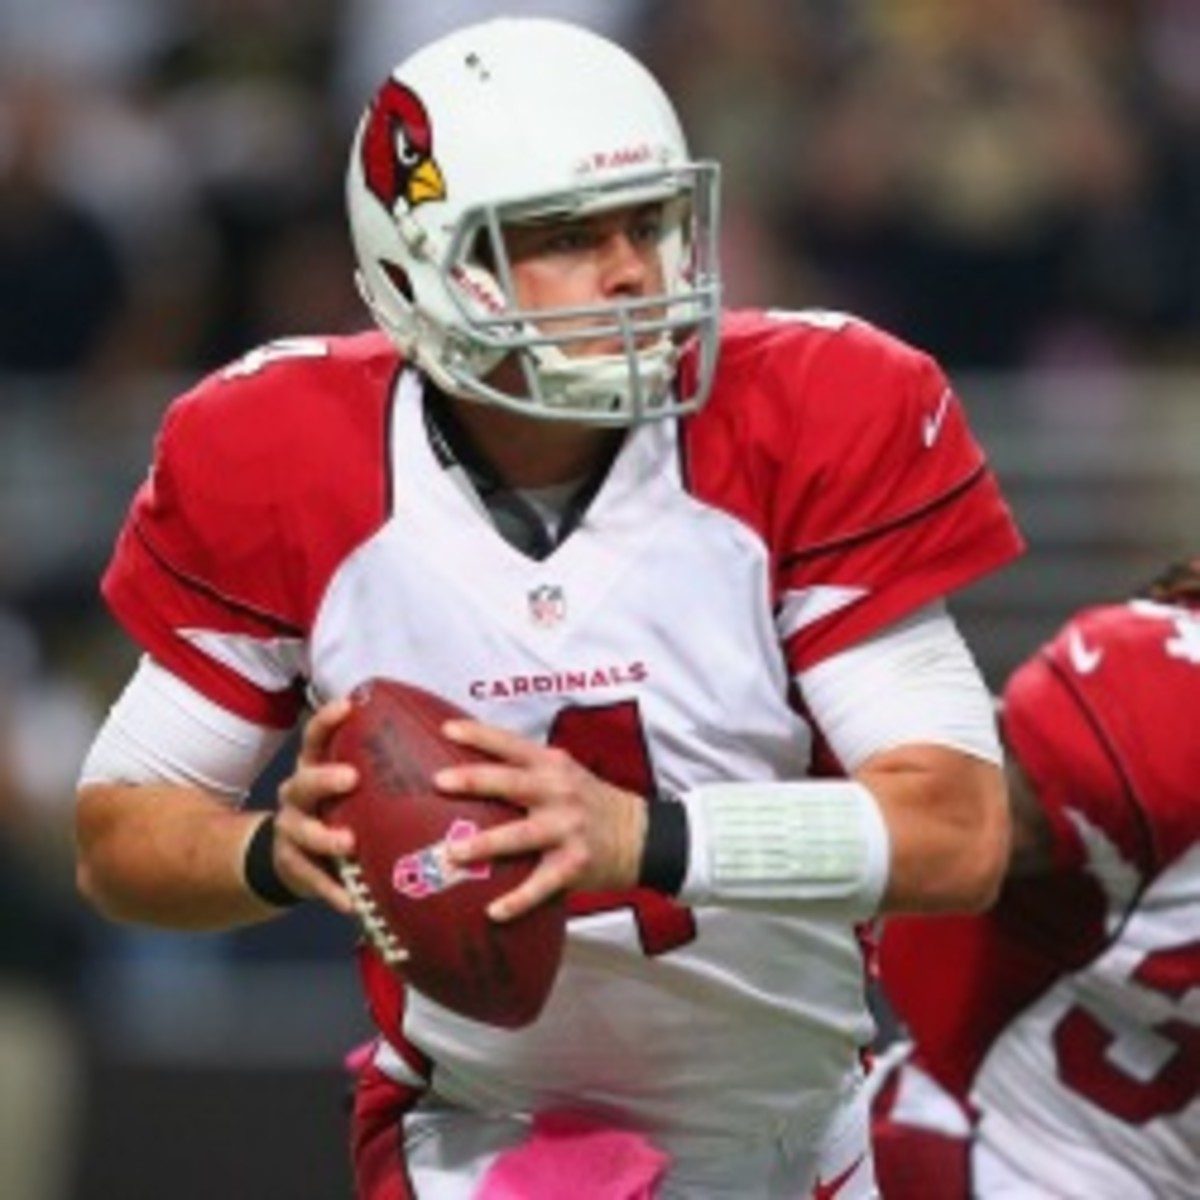 The Bills and free-agent quarterback Kevin Kolb are reportedly close to a deal. (Dilip Vishwanat/Getty Images)